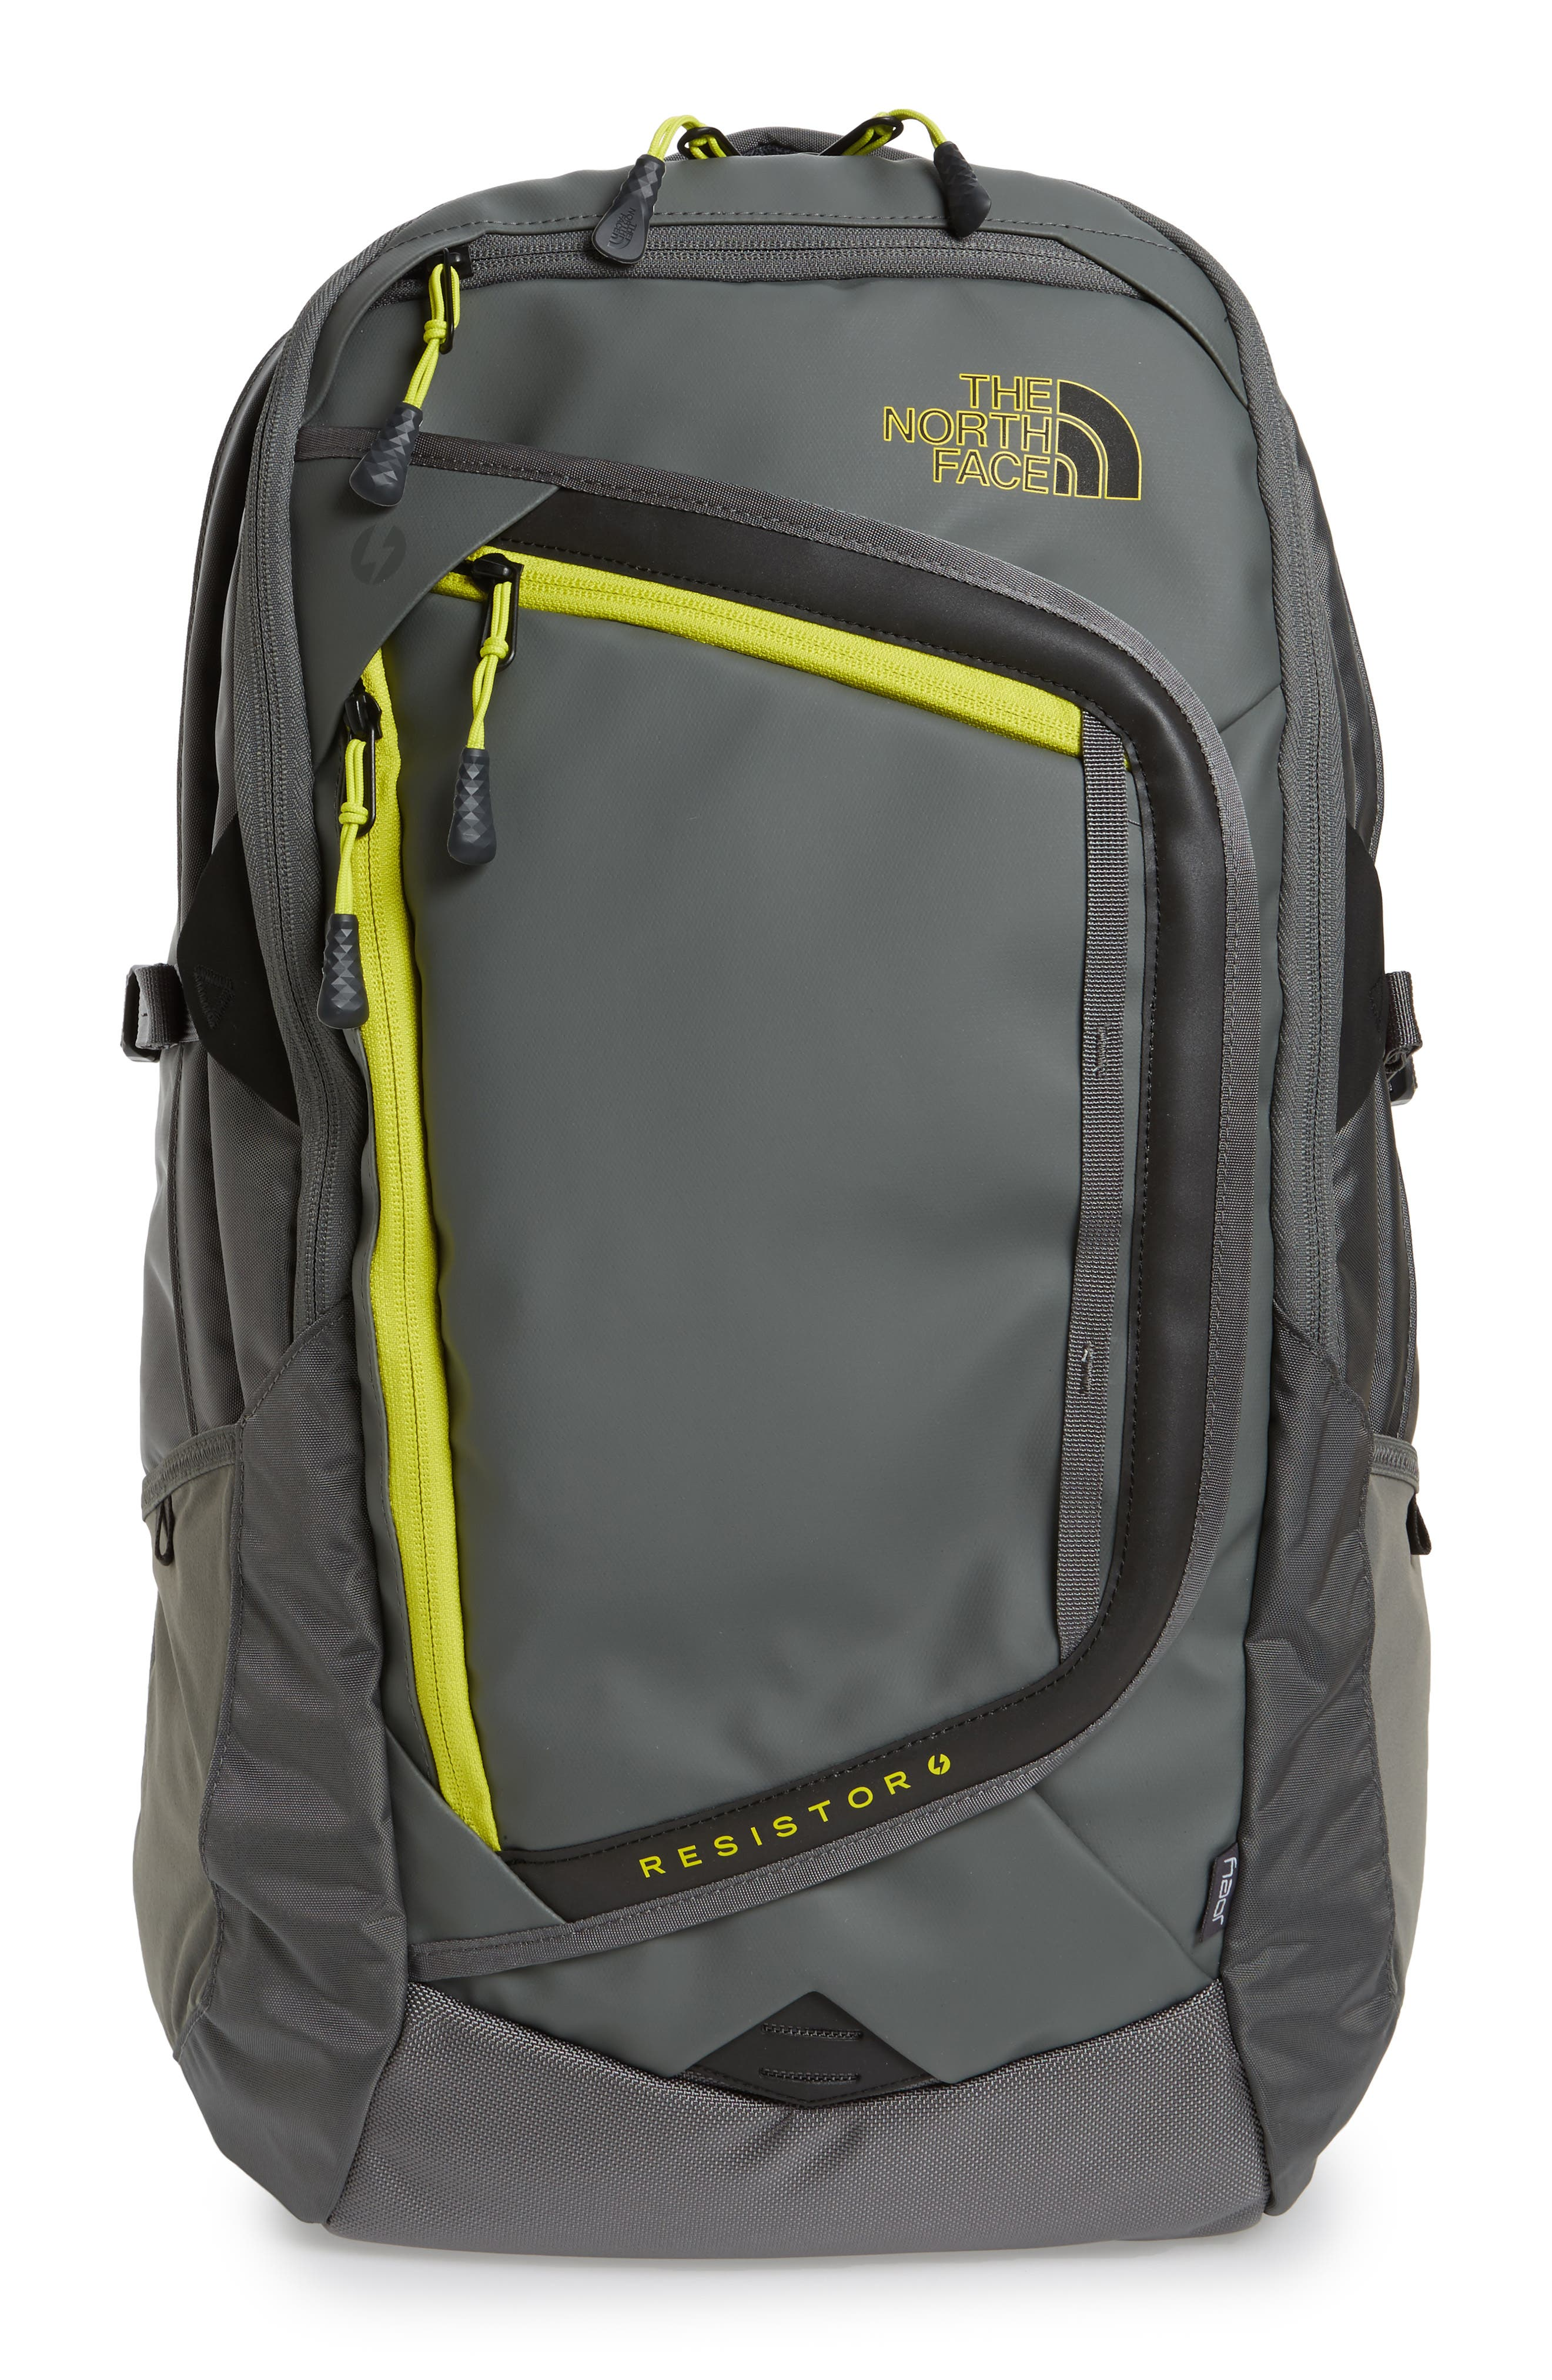 _101881004?crop=pad&pad_color=FFF&format=jpeg&trim=color&trimcolor=FFF&w=670&h=720 the north face resistor charged backpack nordstrom north face fuse box charged backpack at n-0.co